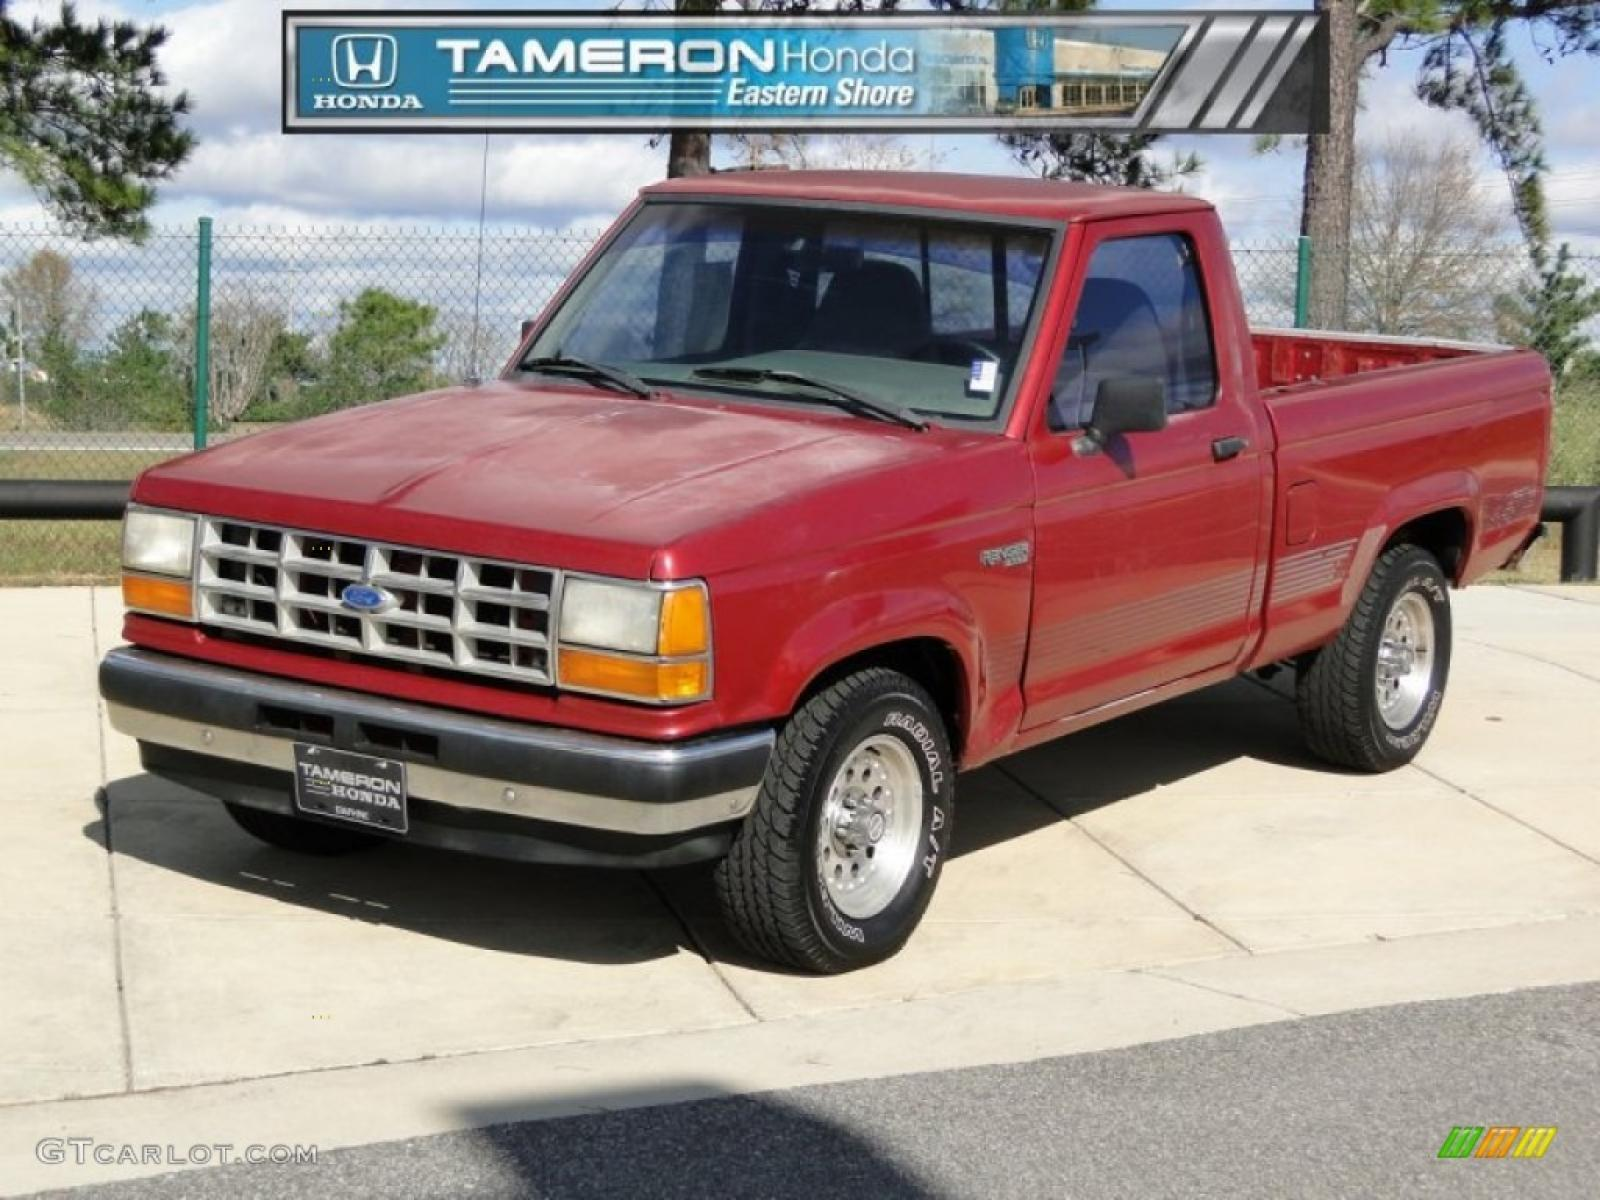 800 1024 1280 1600 origin 1992 ford ranger